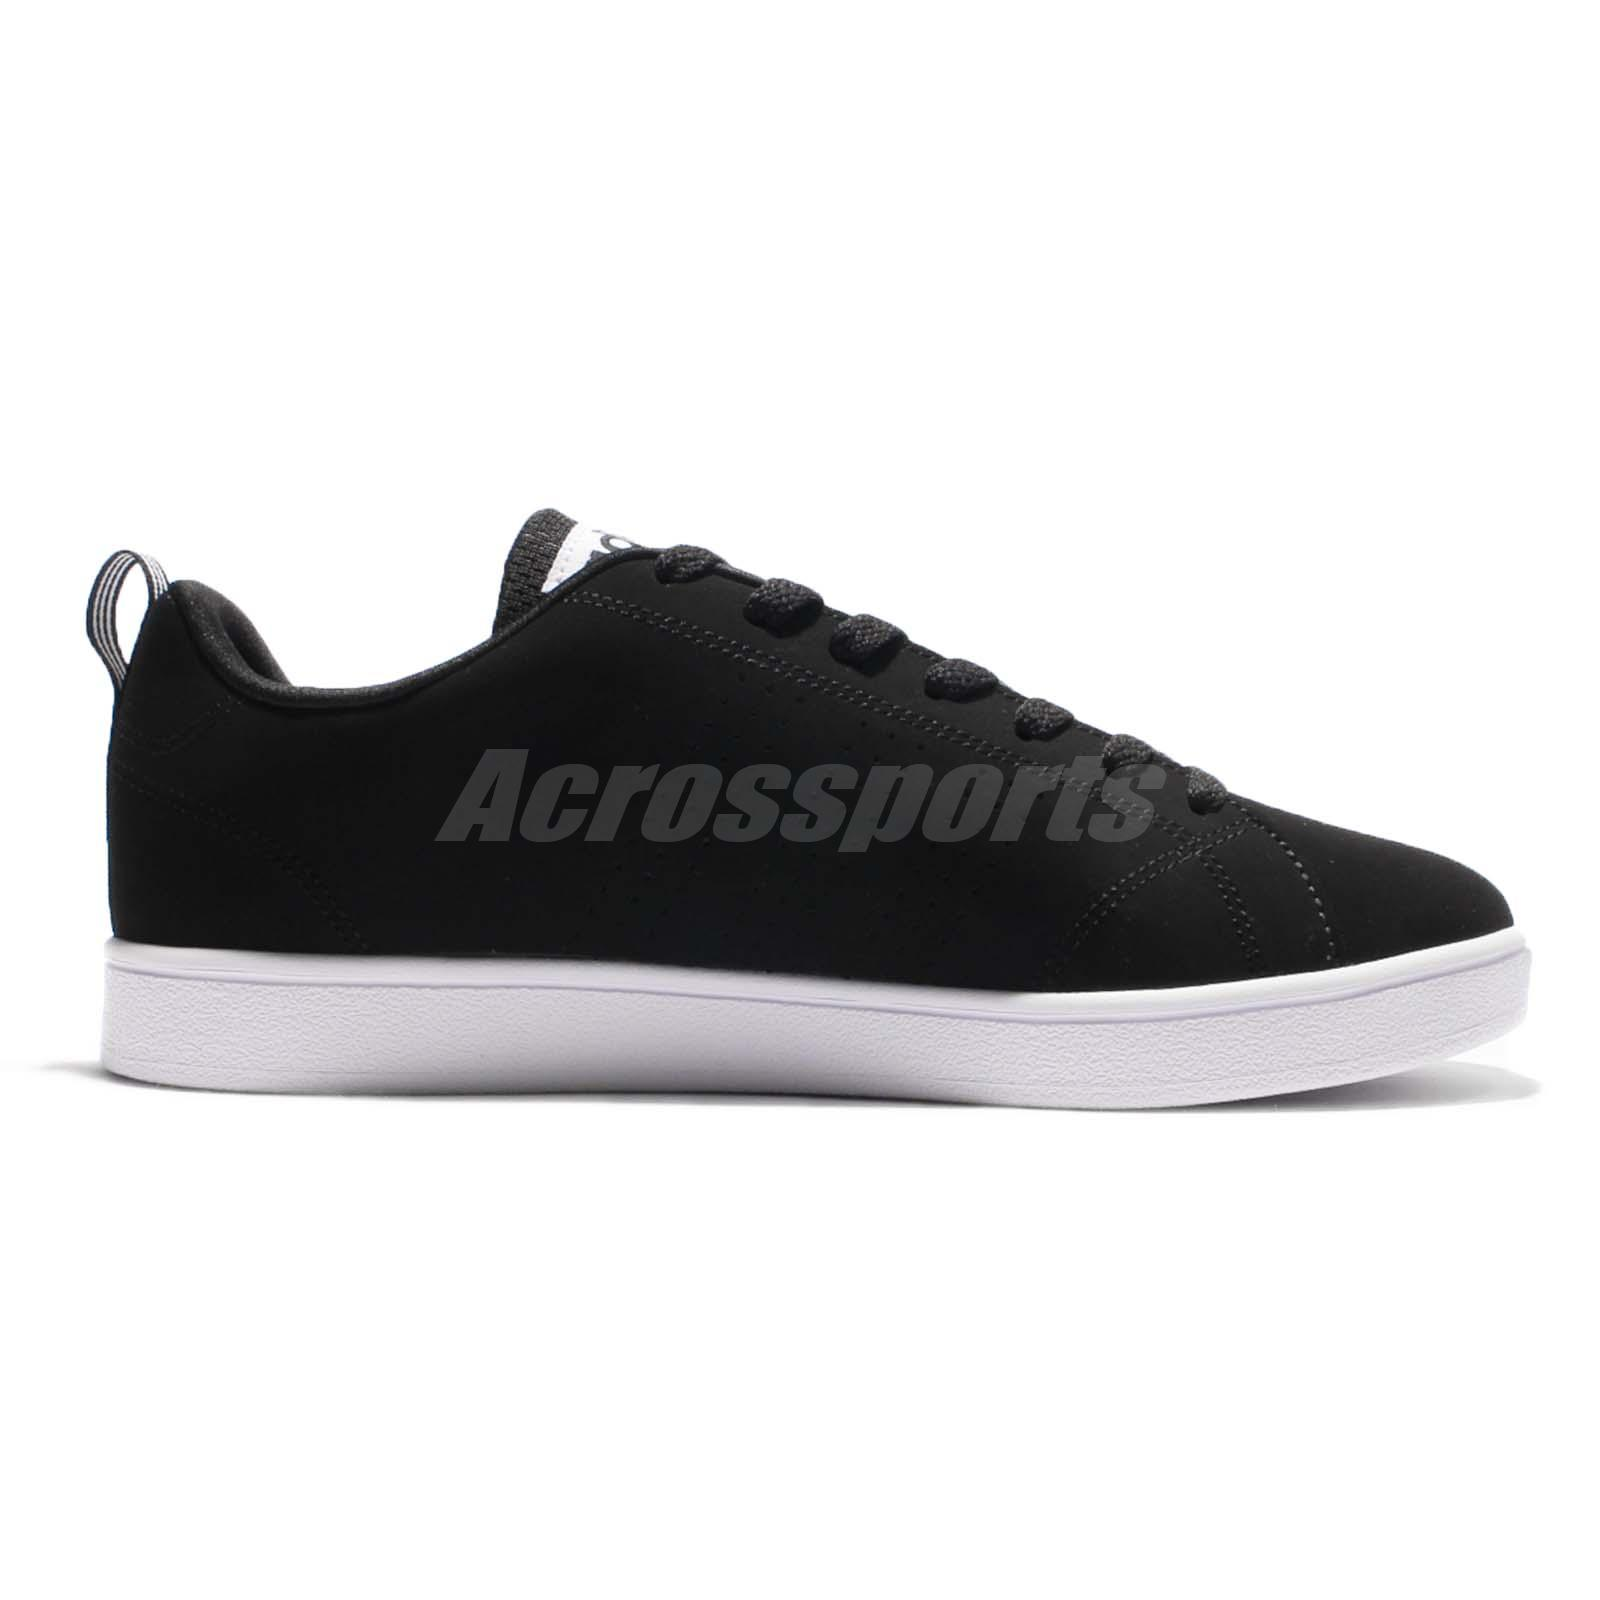 adidas neo label vs advantage clean black white men casual shoes